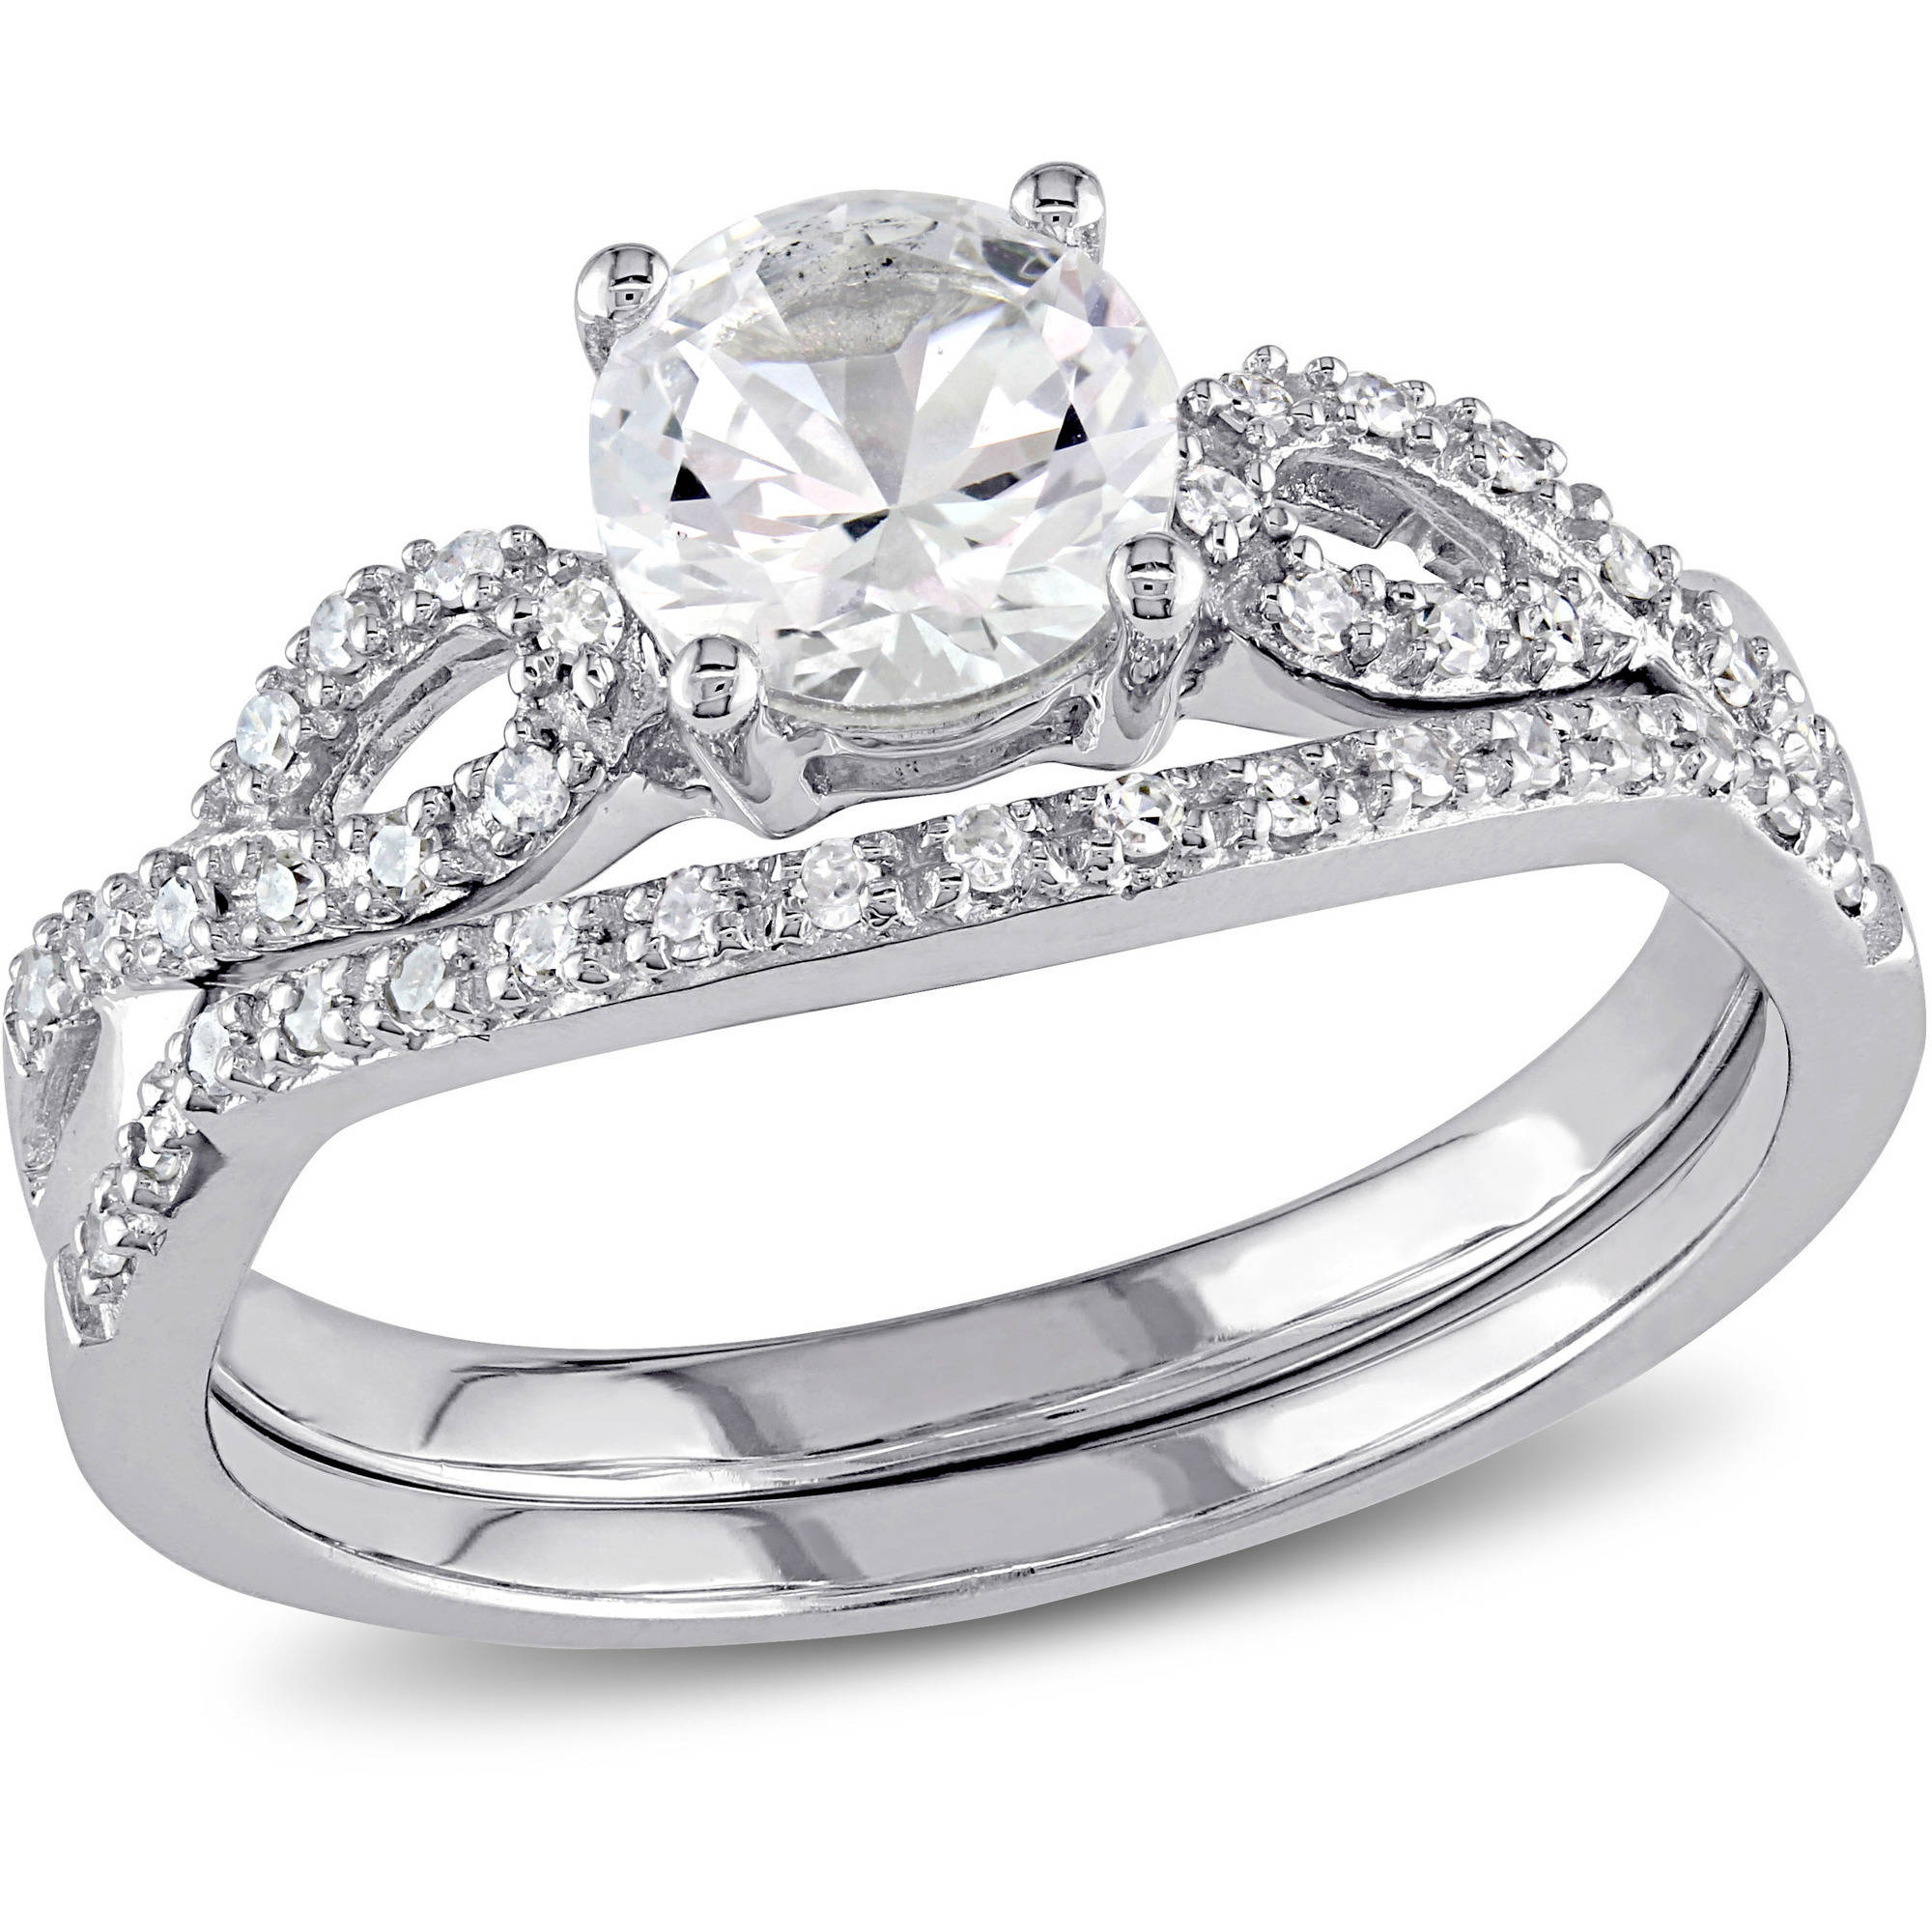 Miabella 1 Carat T.G.W. Created White Sapphire And 1/6 Carat T.W. Diamond  10kt White Gold Infinity Bridal Set   Walmart.com